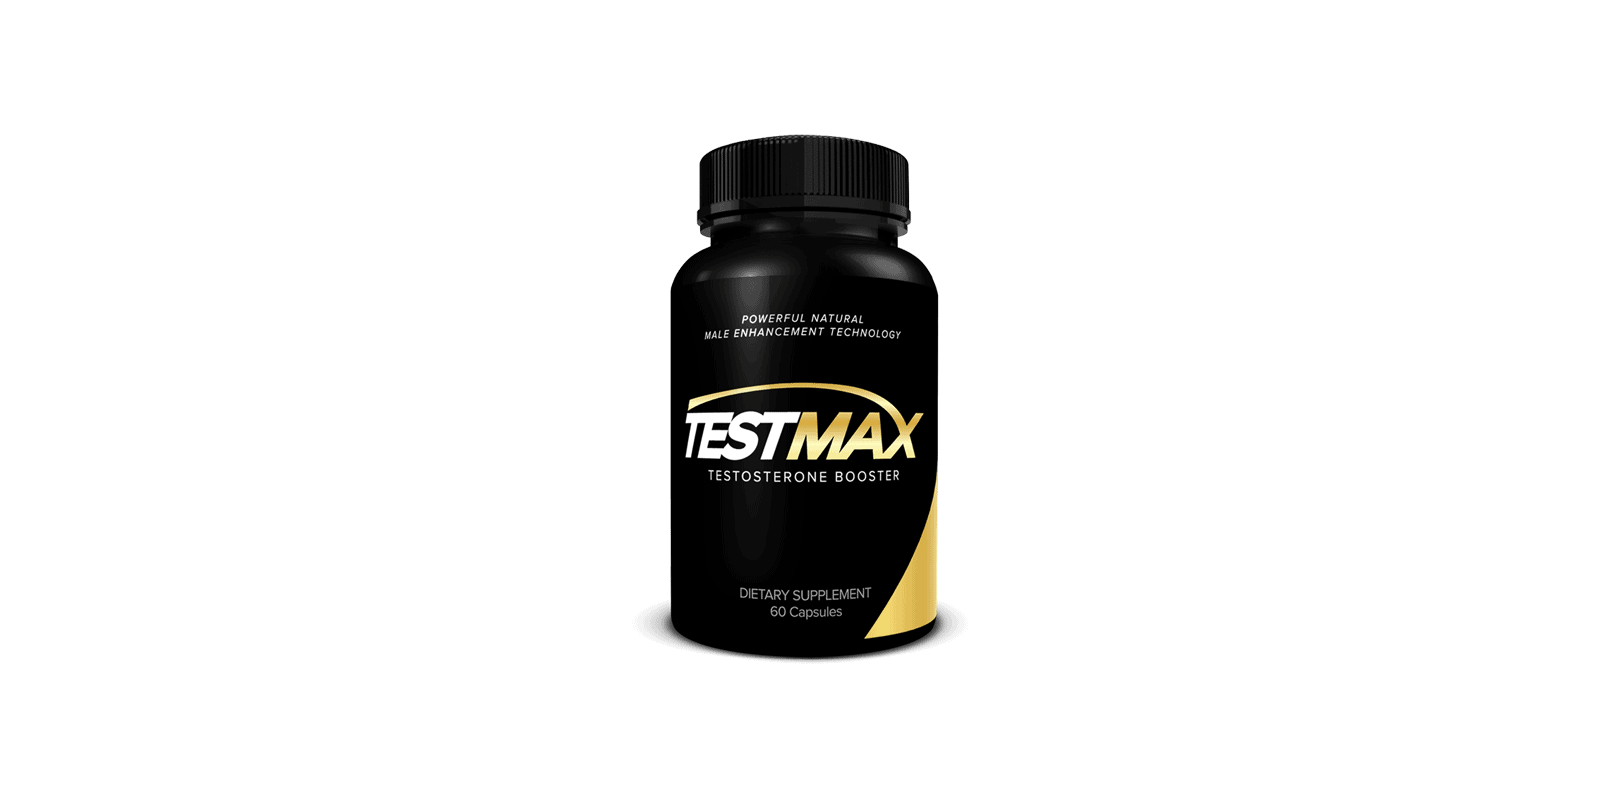 TestMax Booster reviews